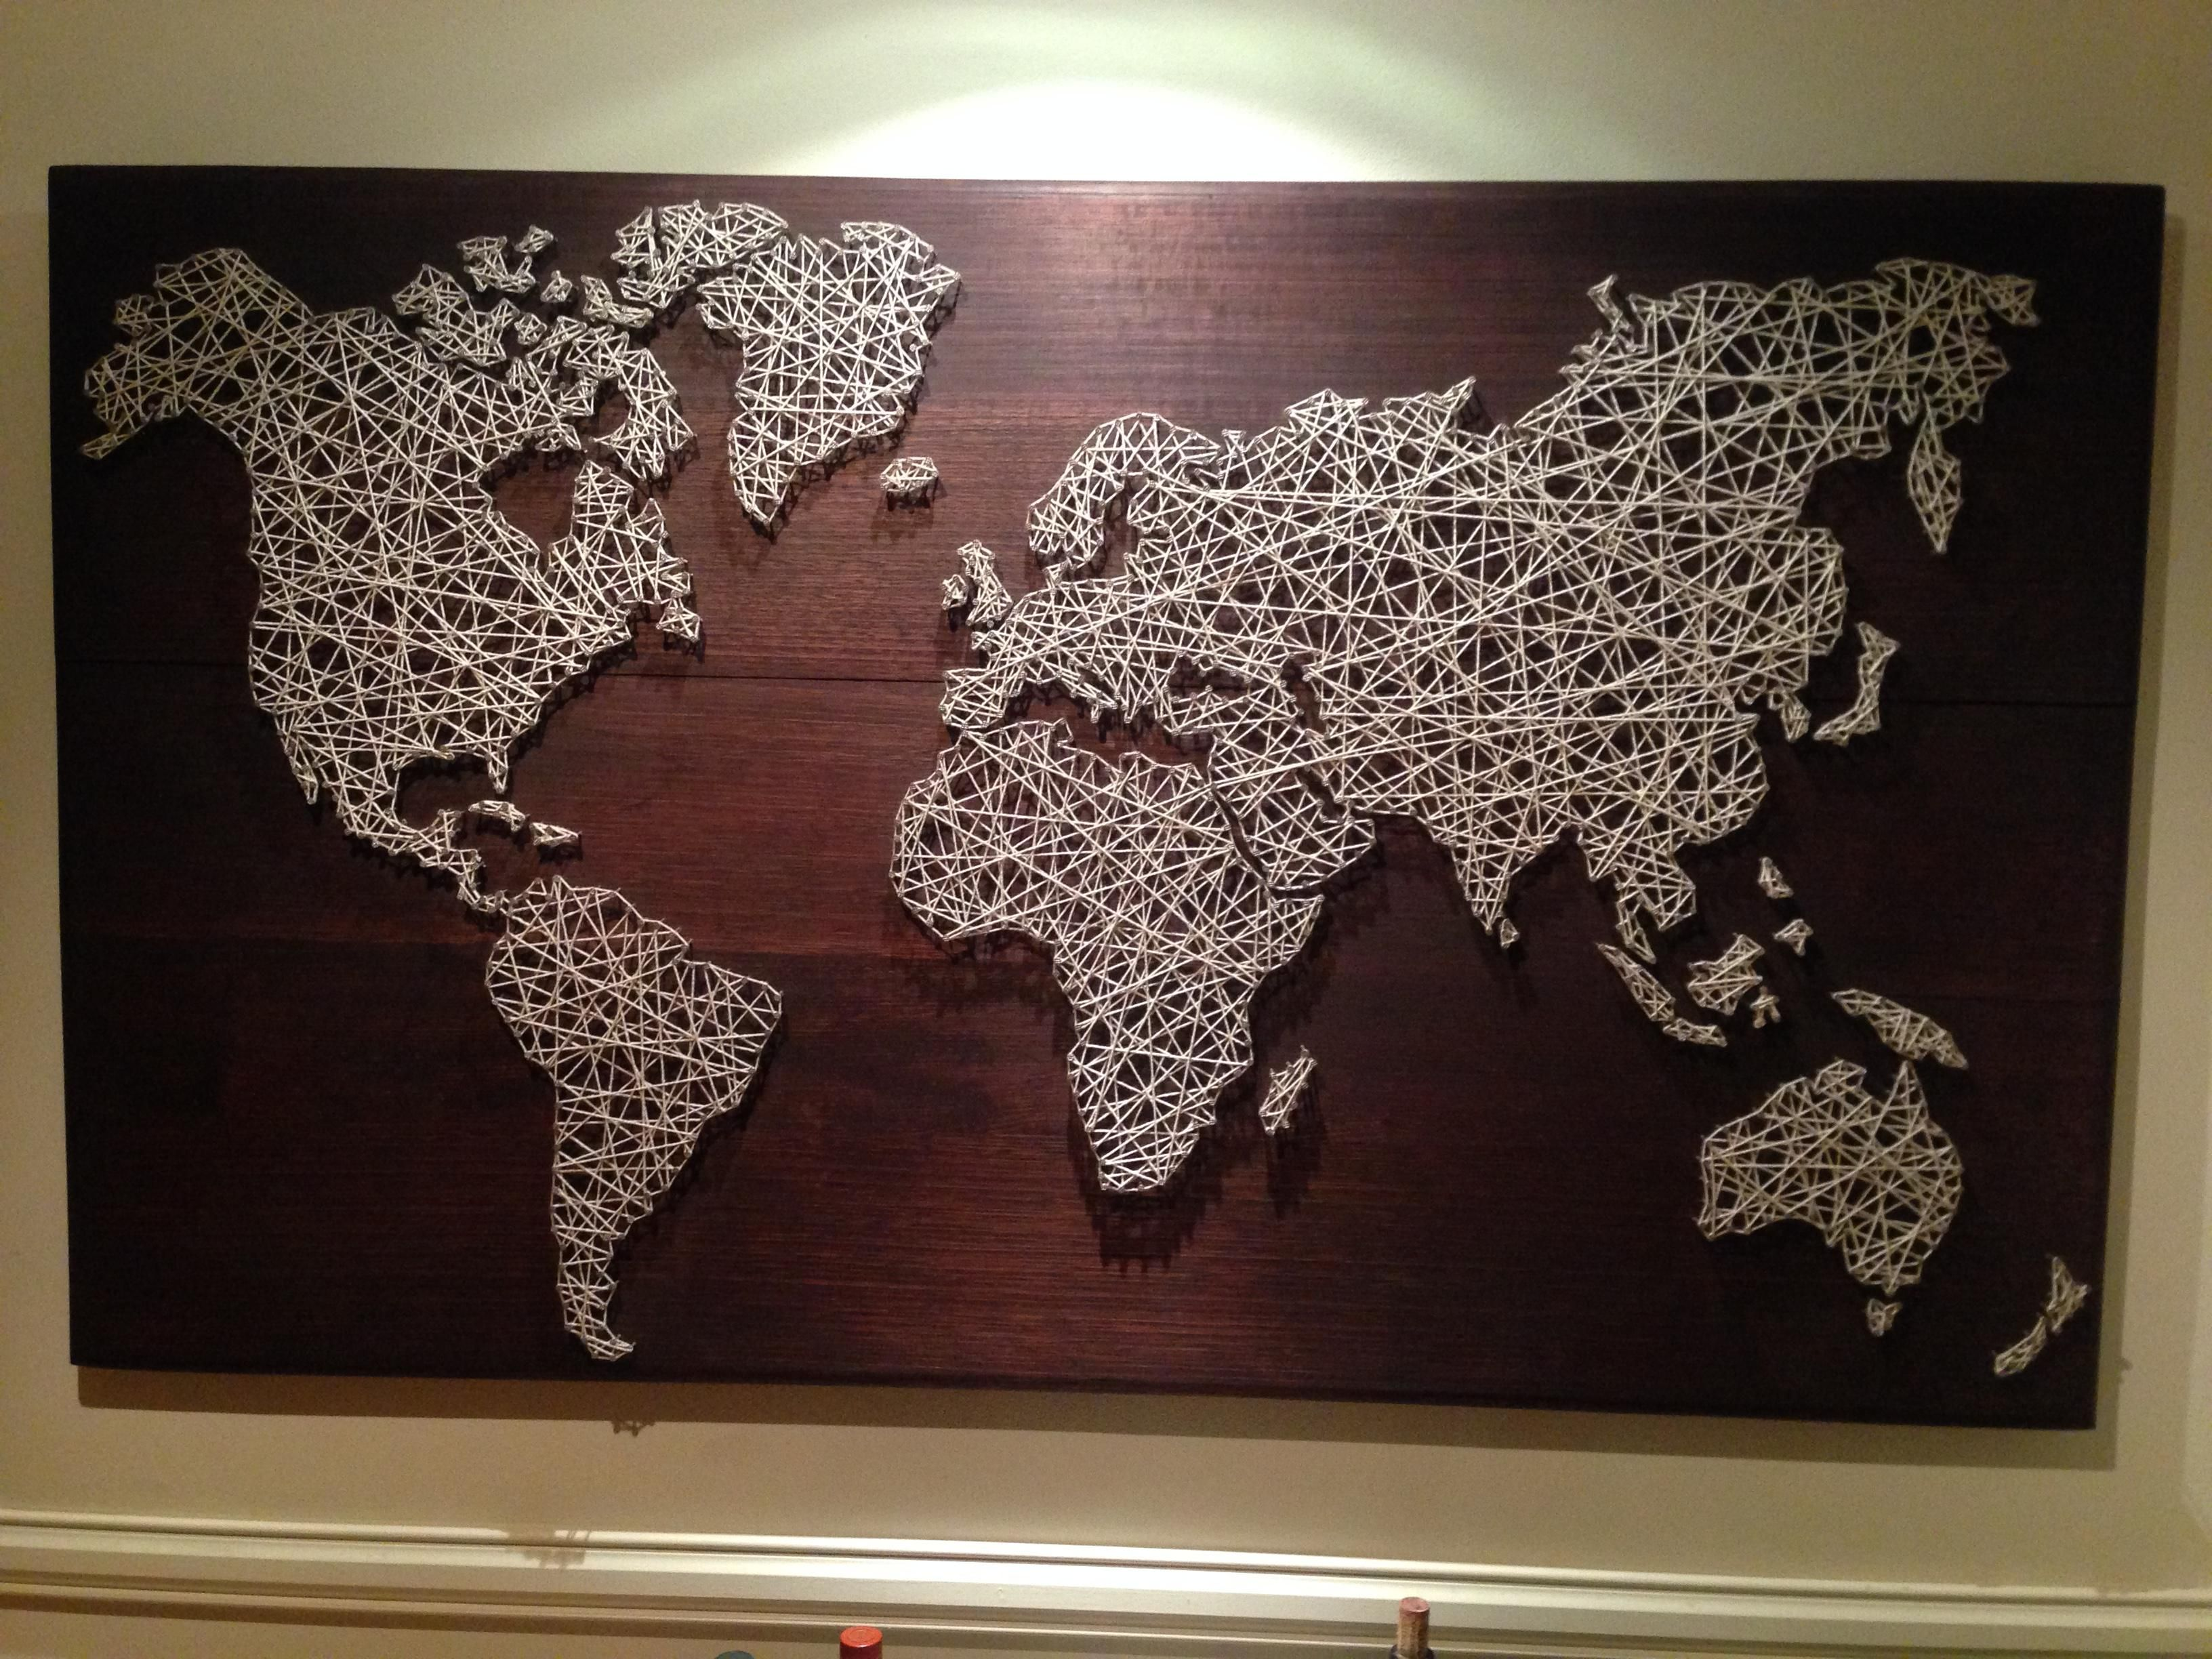 World string art | String art, Twine and Cotton